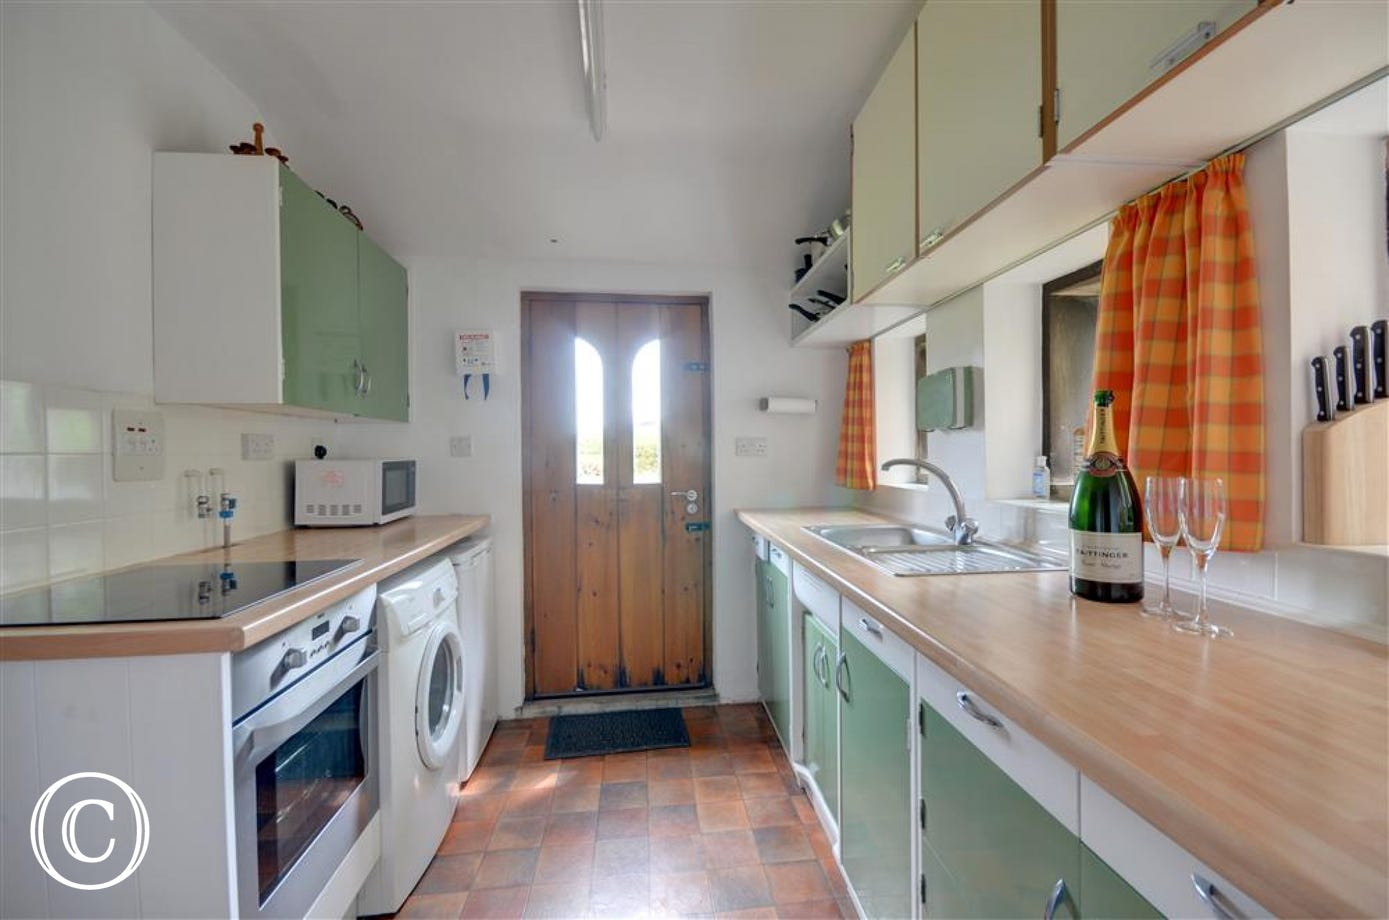 Kitchen is modern and well equipped.